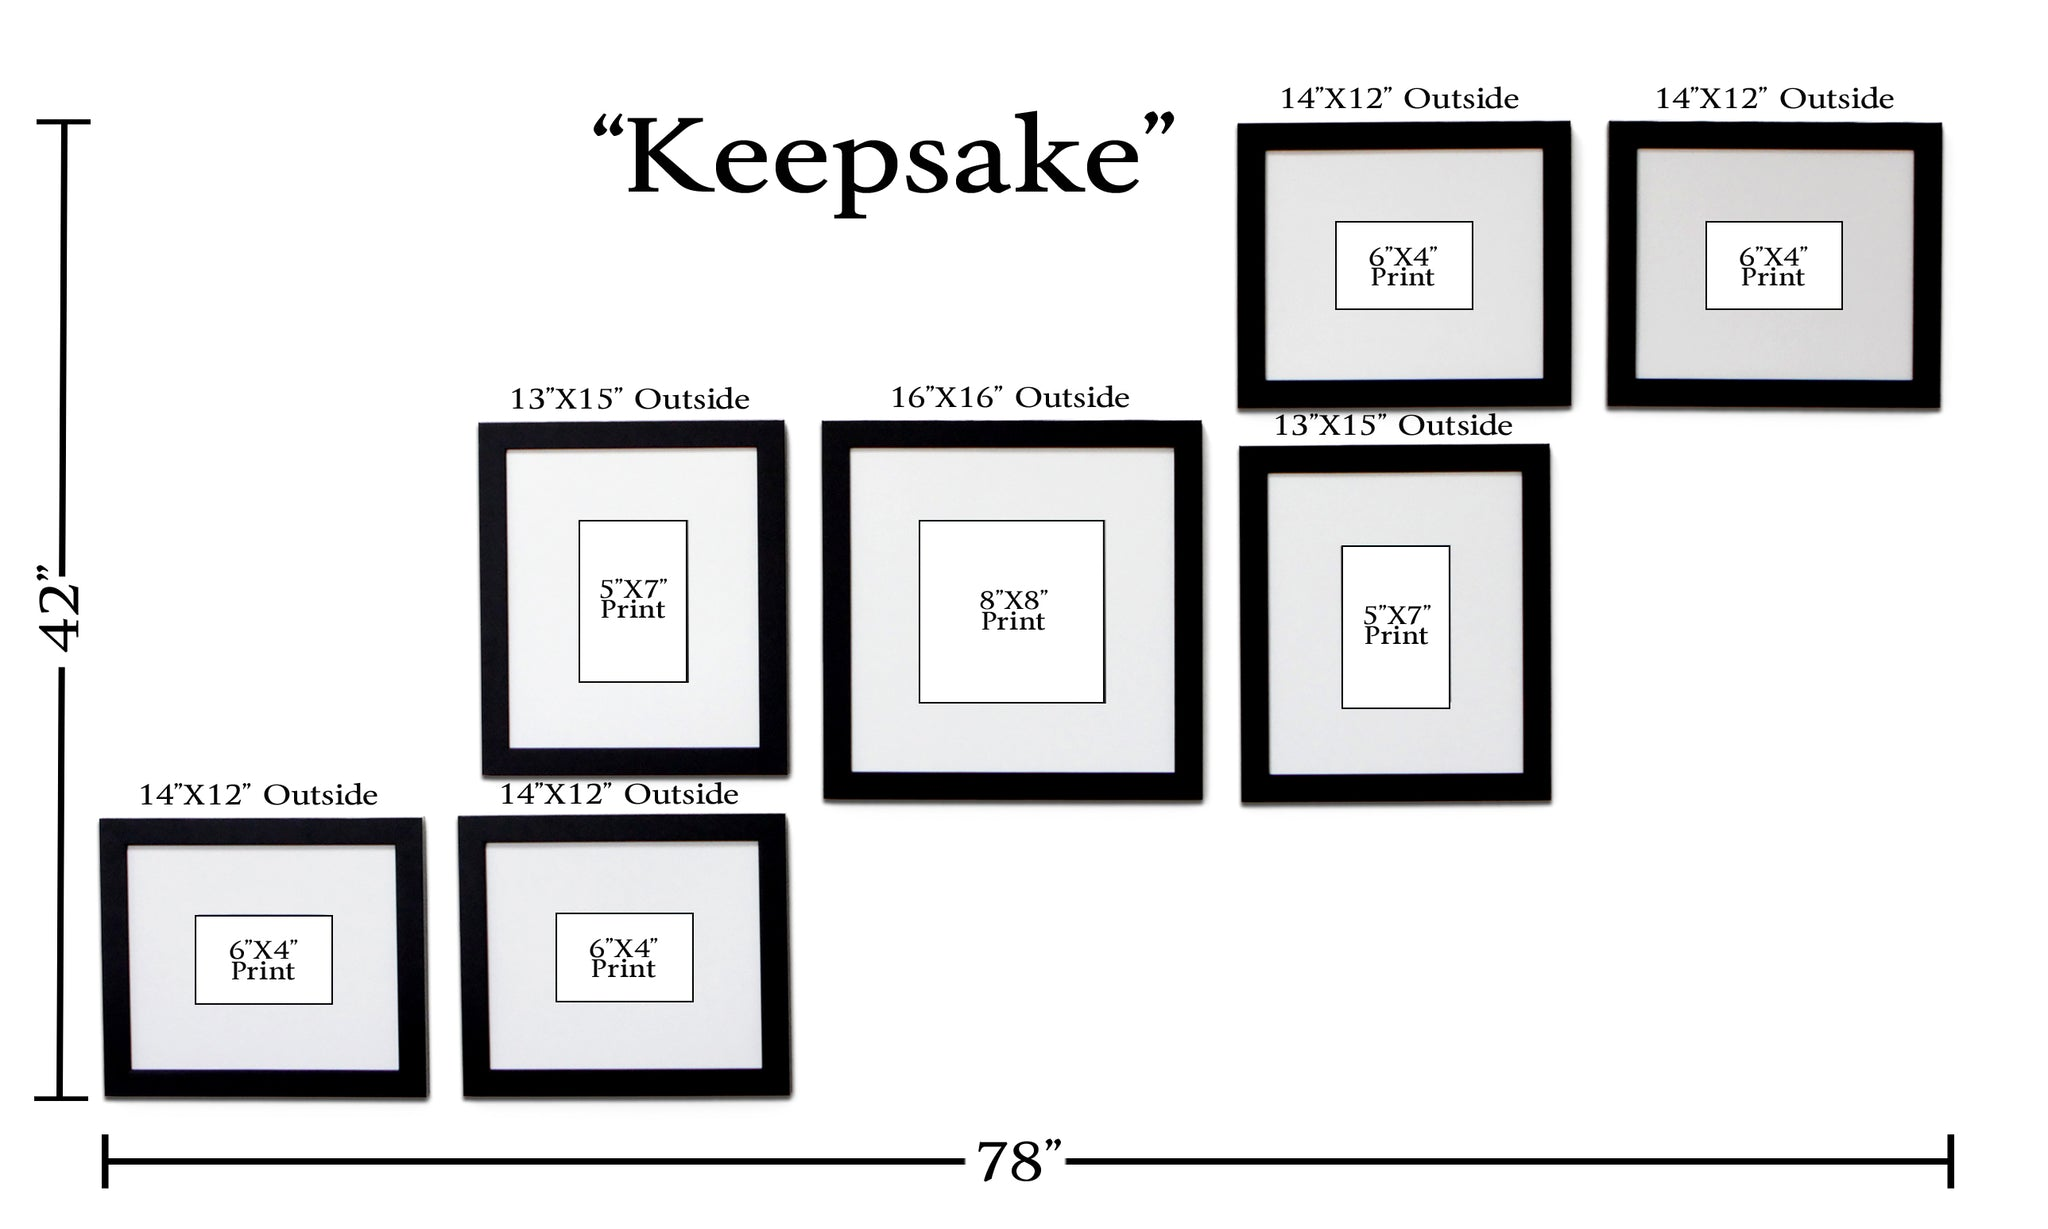 Keepsake 7 Frame Family Portrait Gallery With 3 Designer Mat